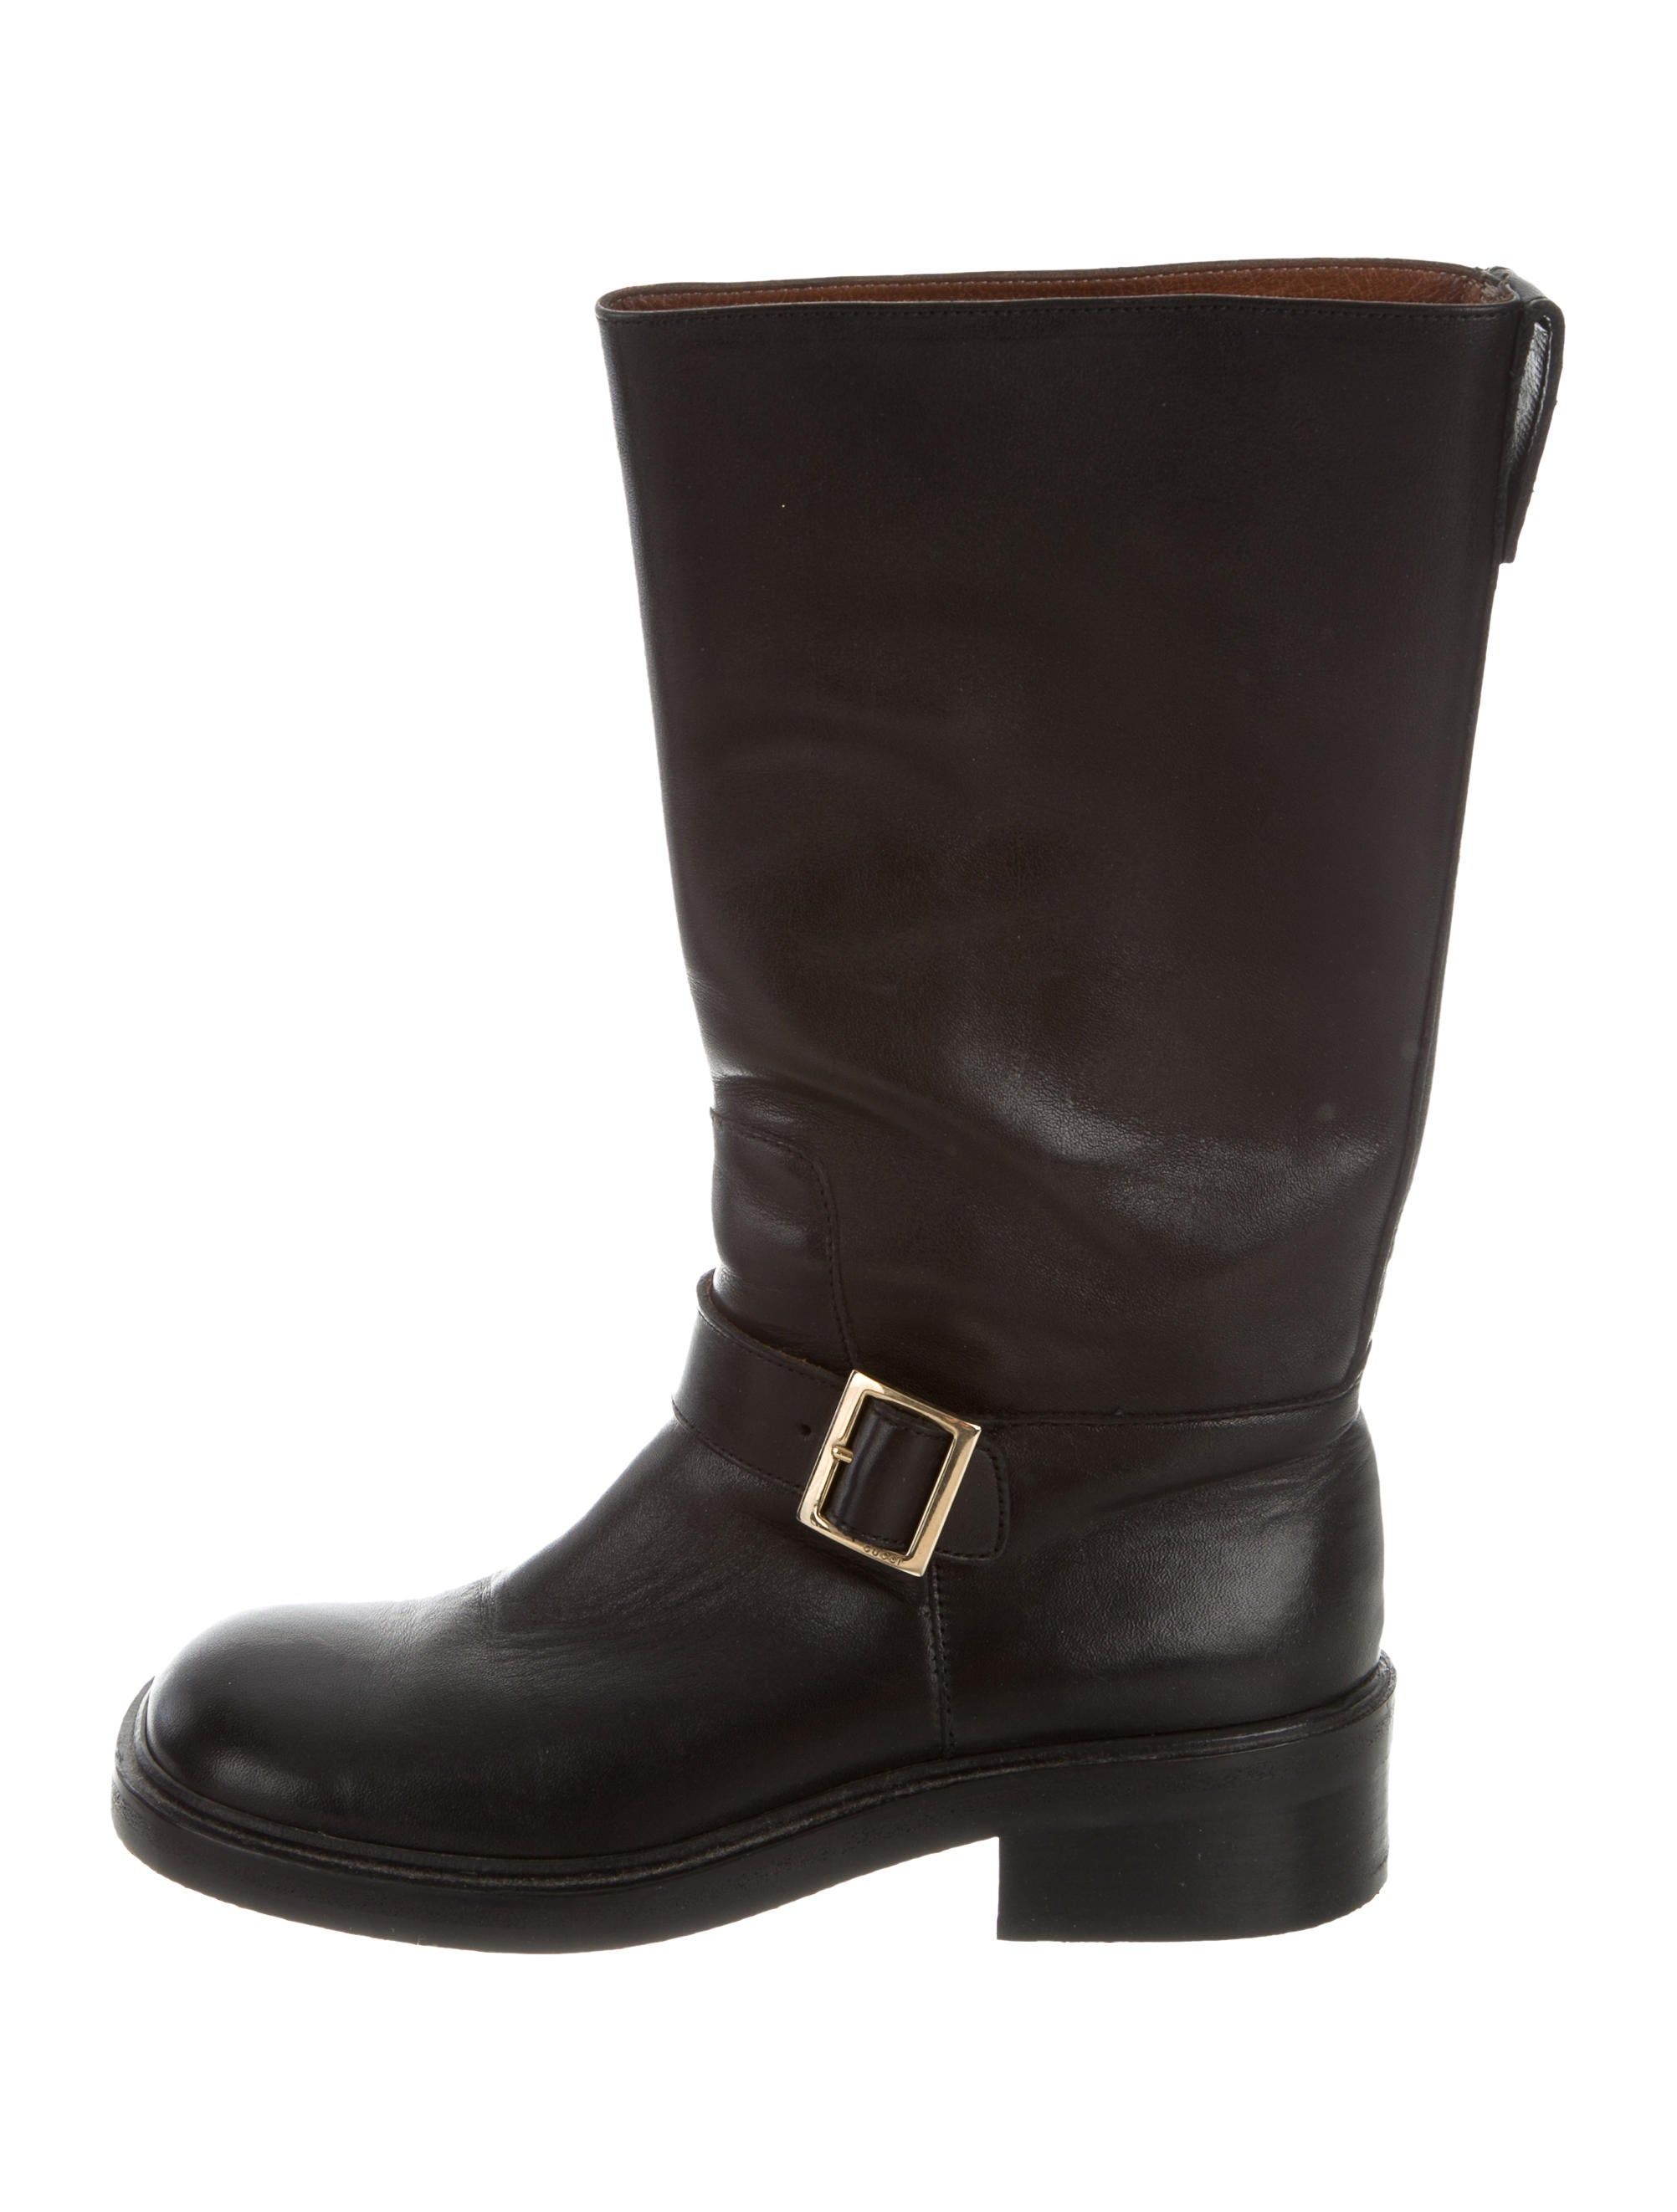 gucci leather mid calf boots shoes guc164167 the